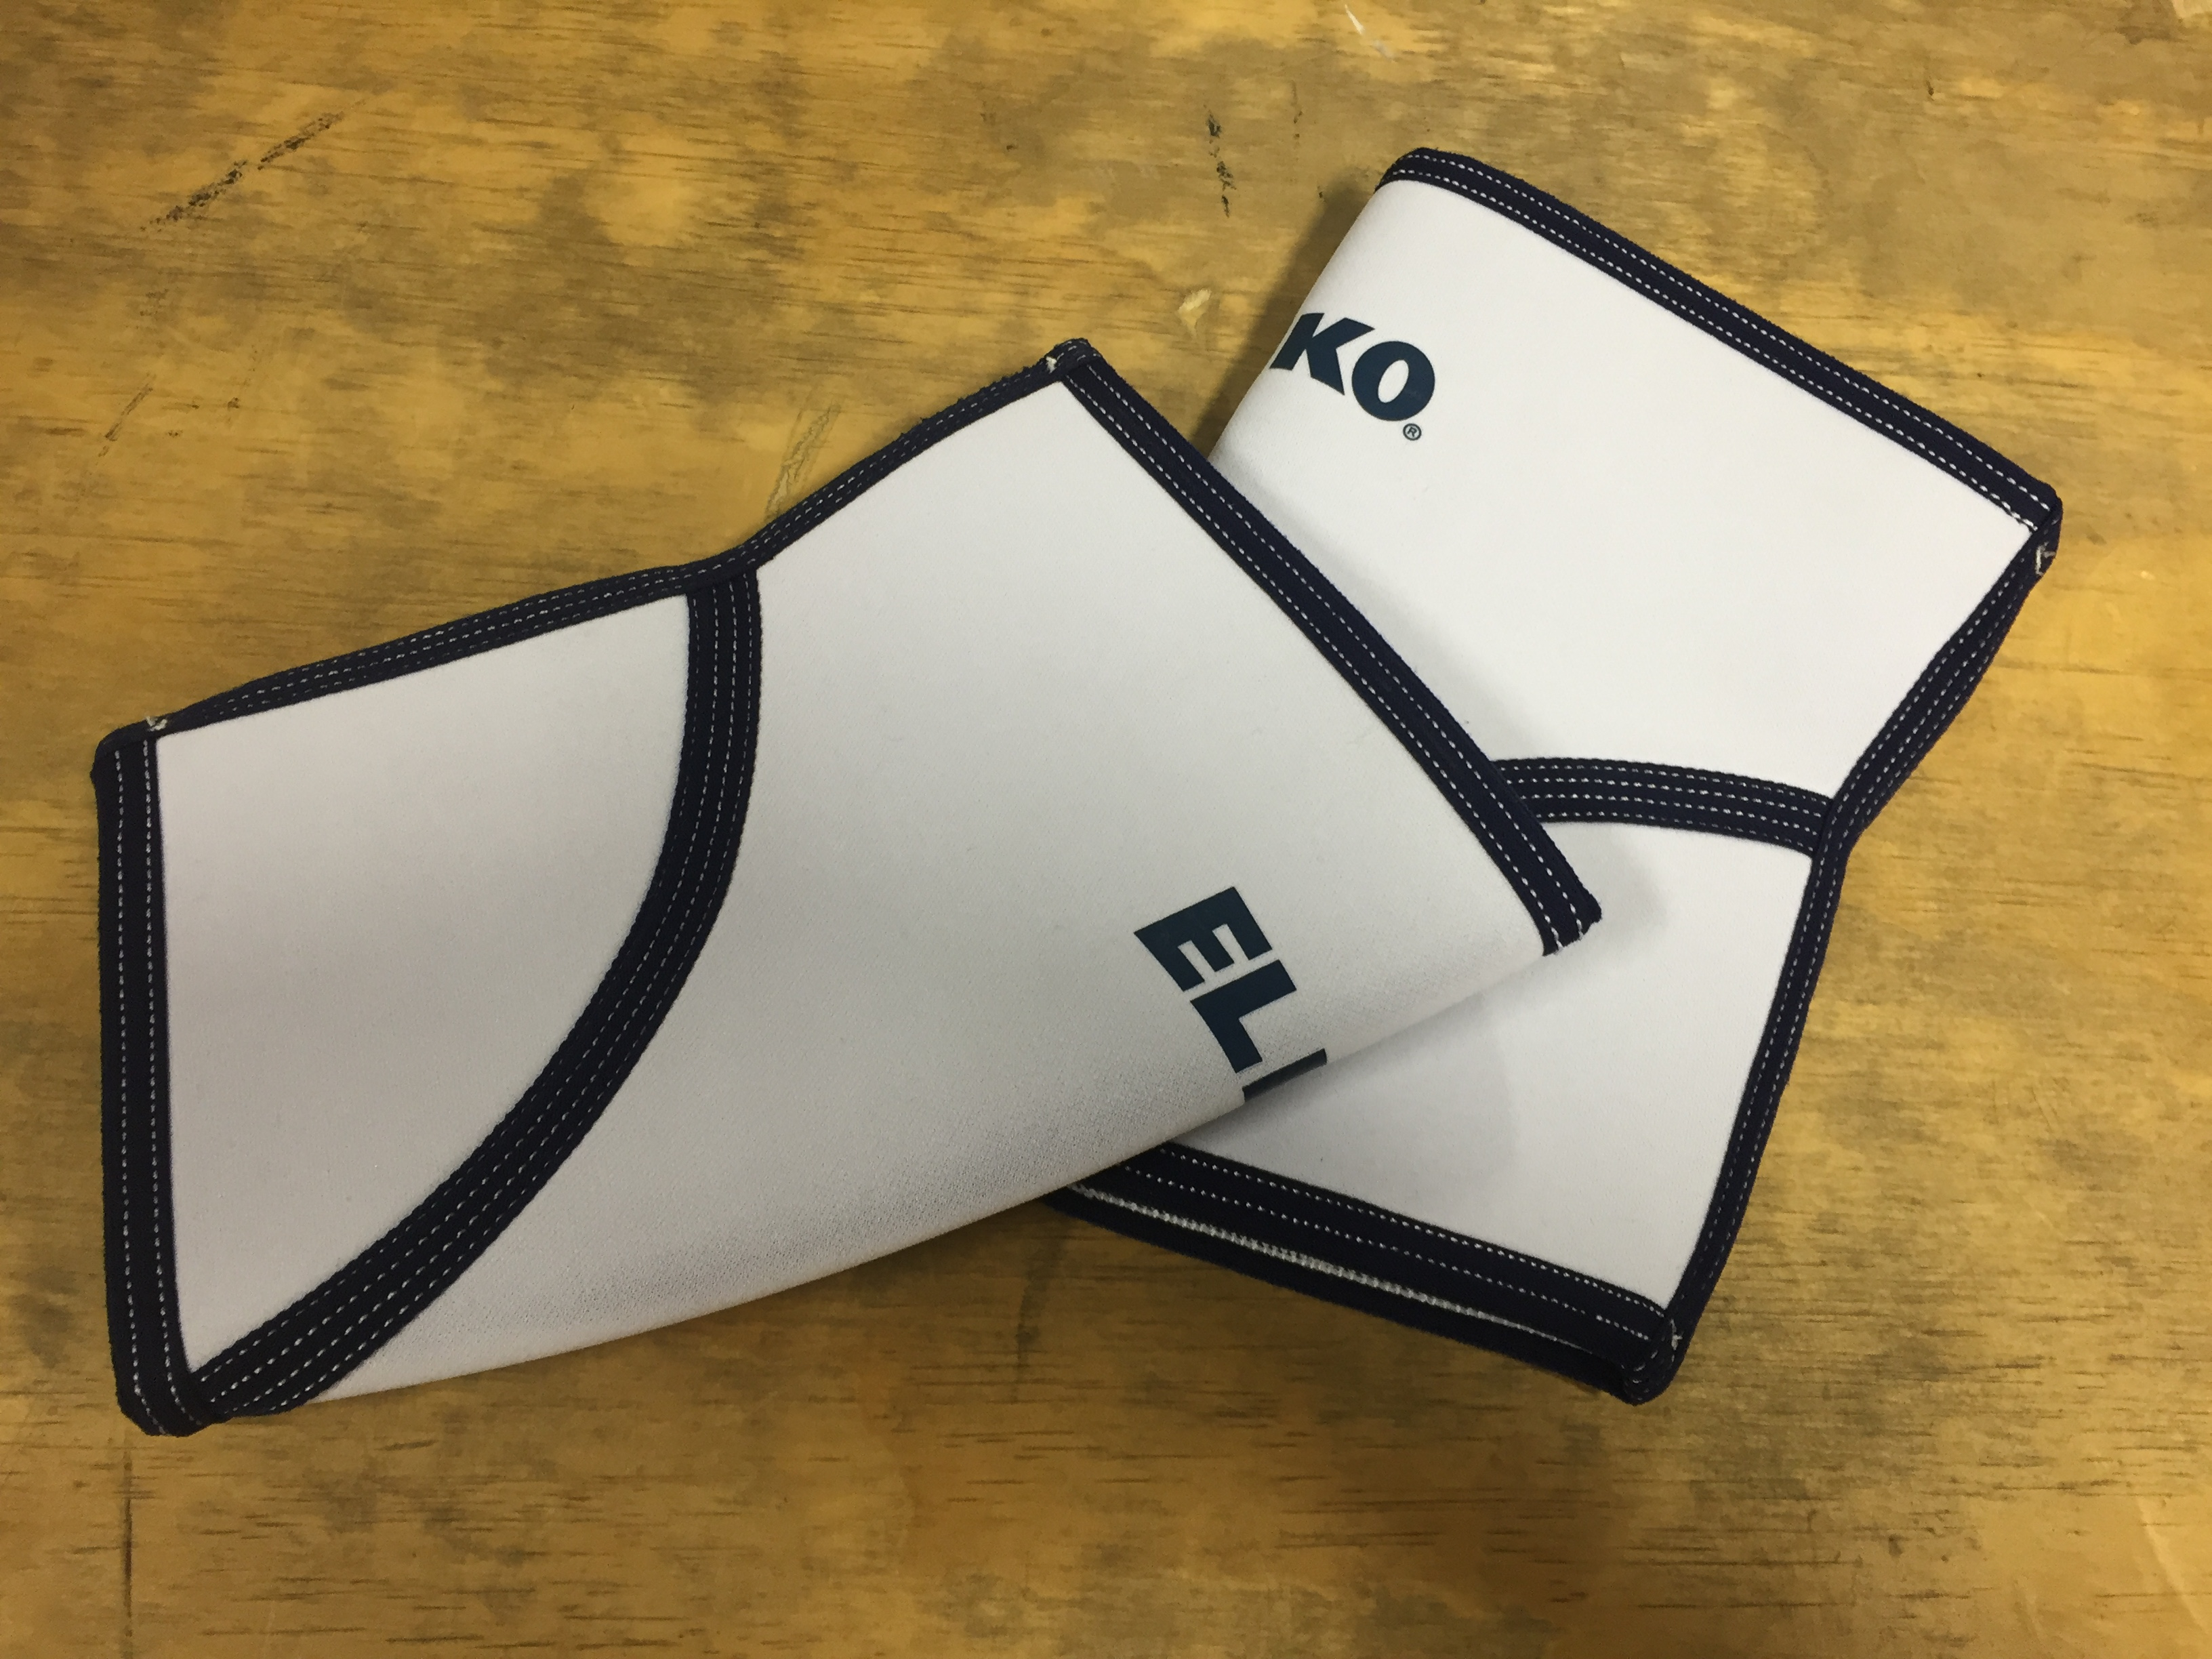 Eleiko 7mm Knee Sleeves Price